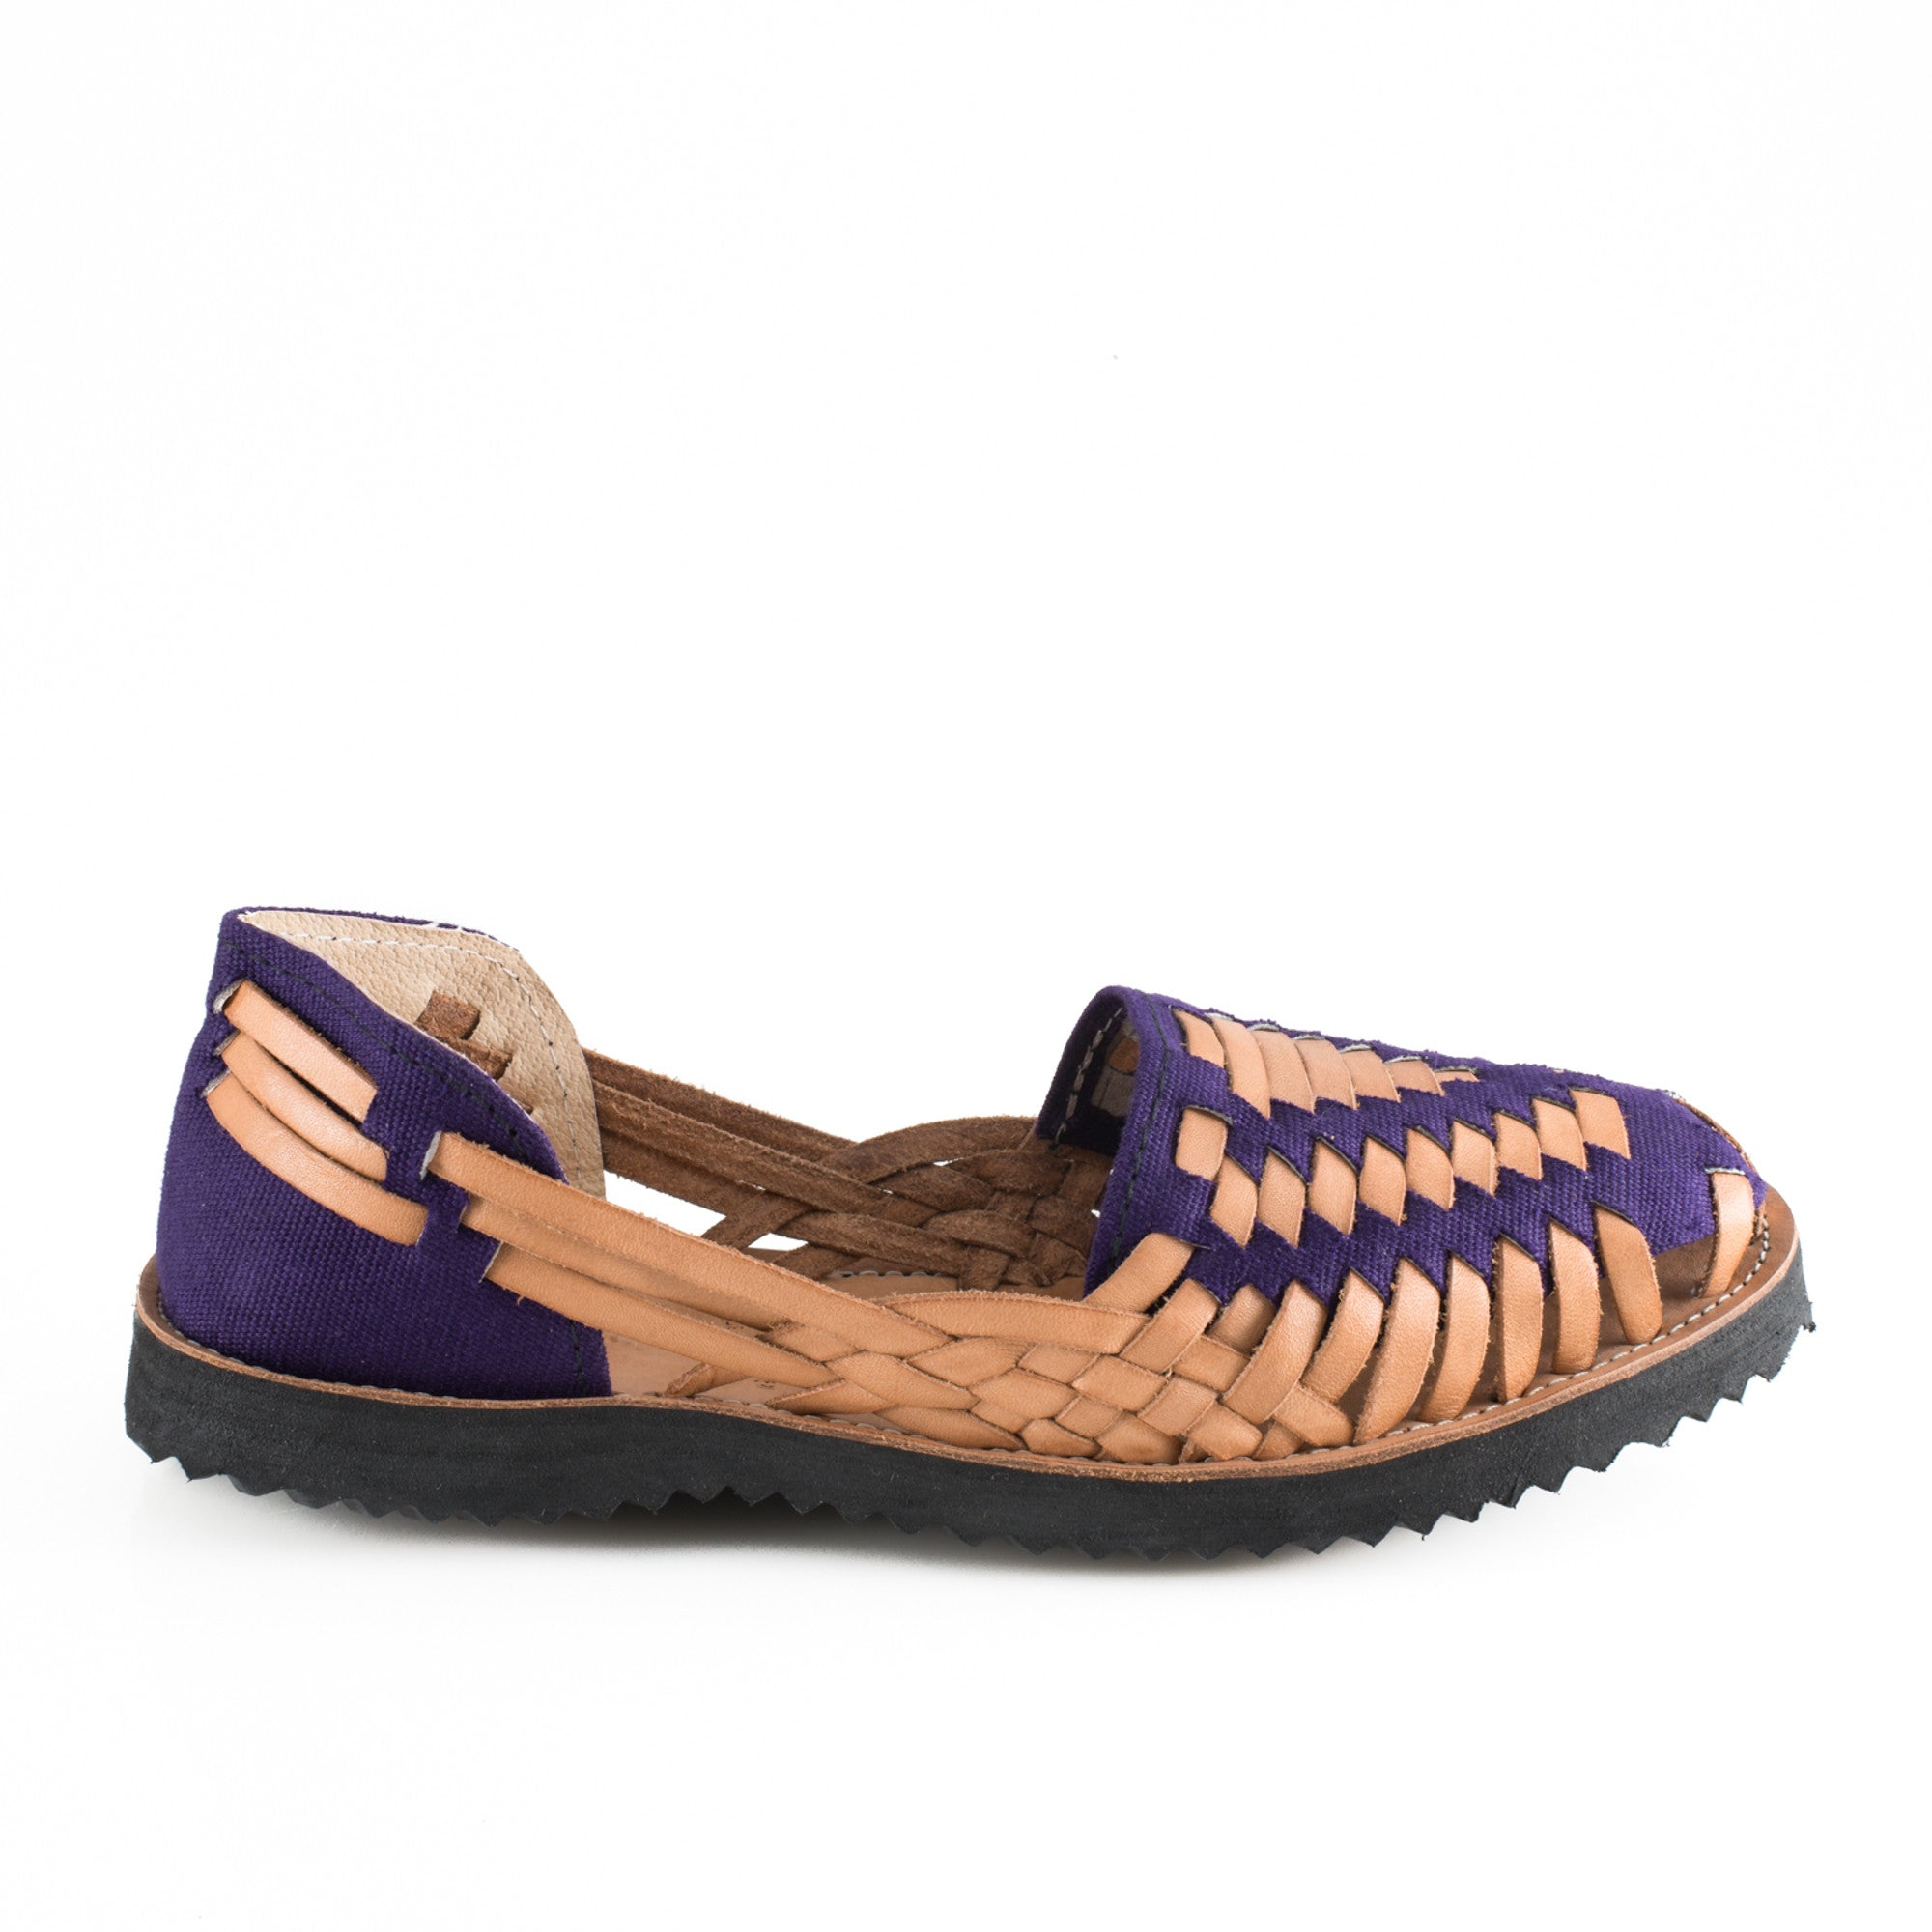 Women's Purple Woven Leather Huarache Sandals - Ix Style - Water For Children